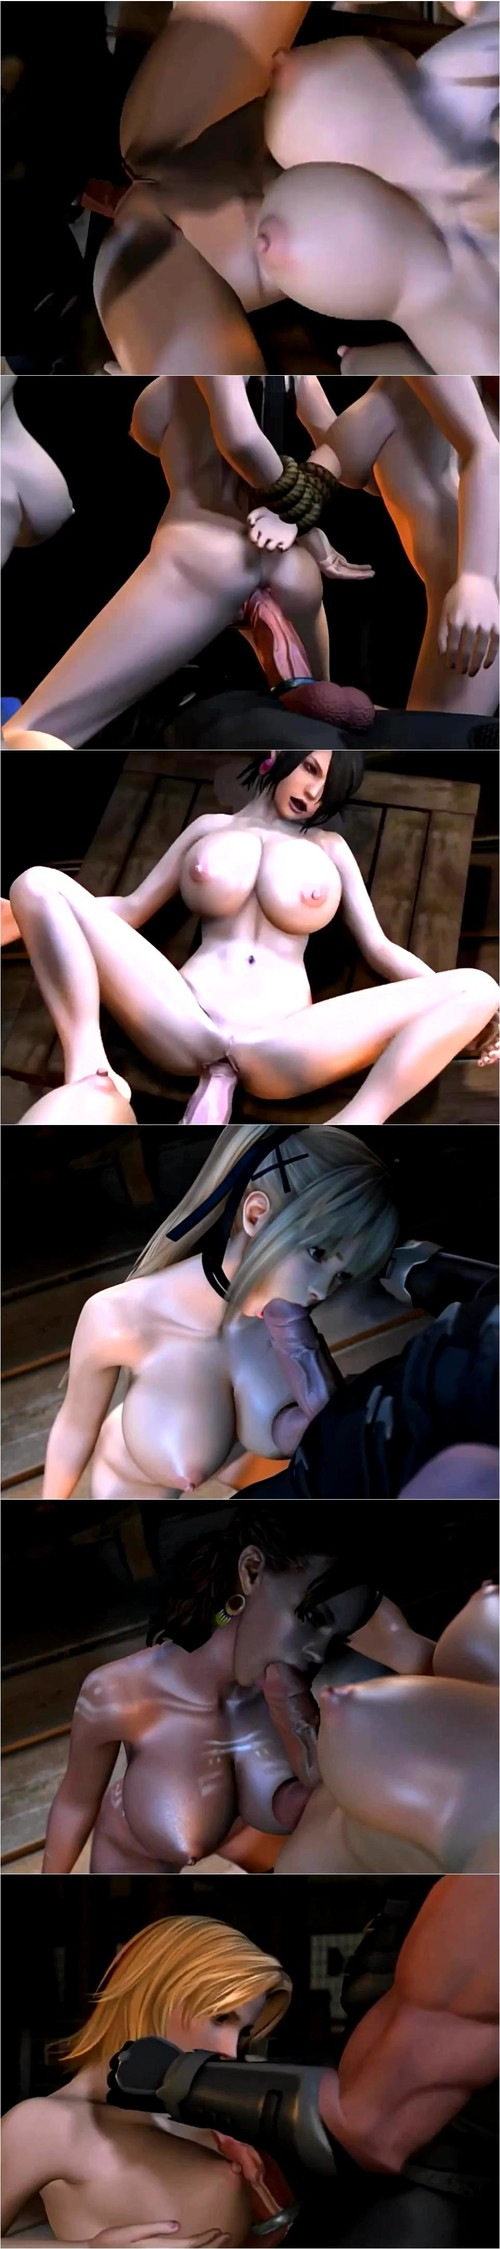 3D Hentai Compilation hentai 3d fantasy porn videos - page 219 - free porn & adult